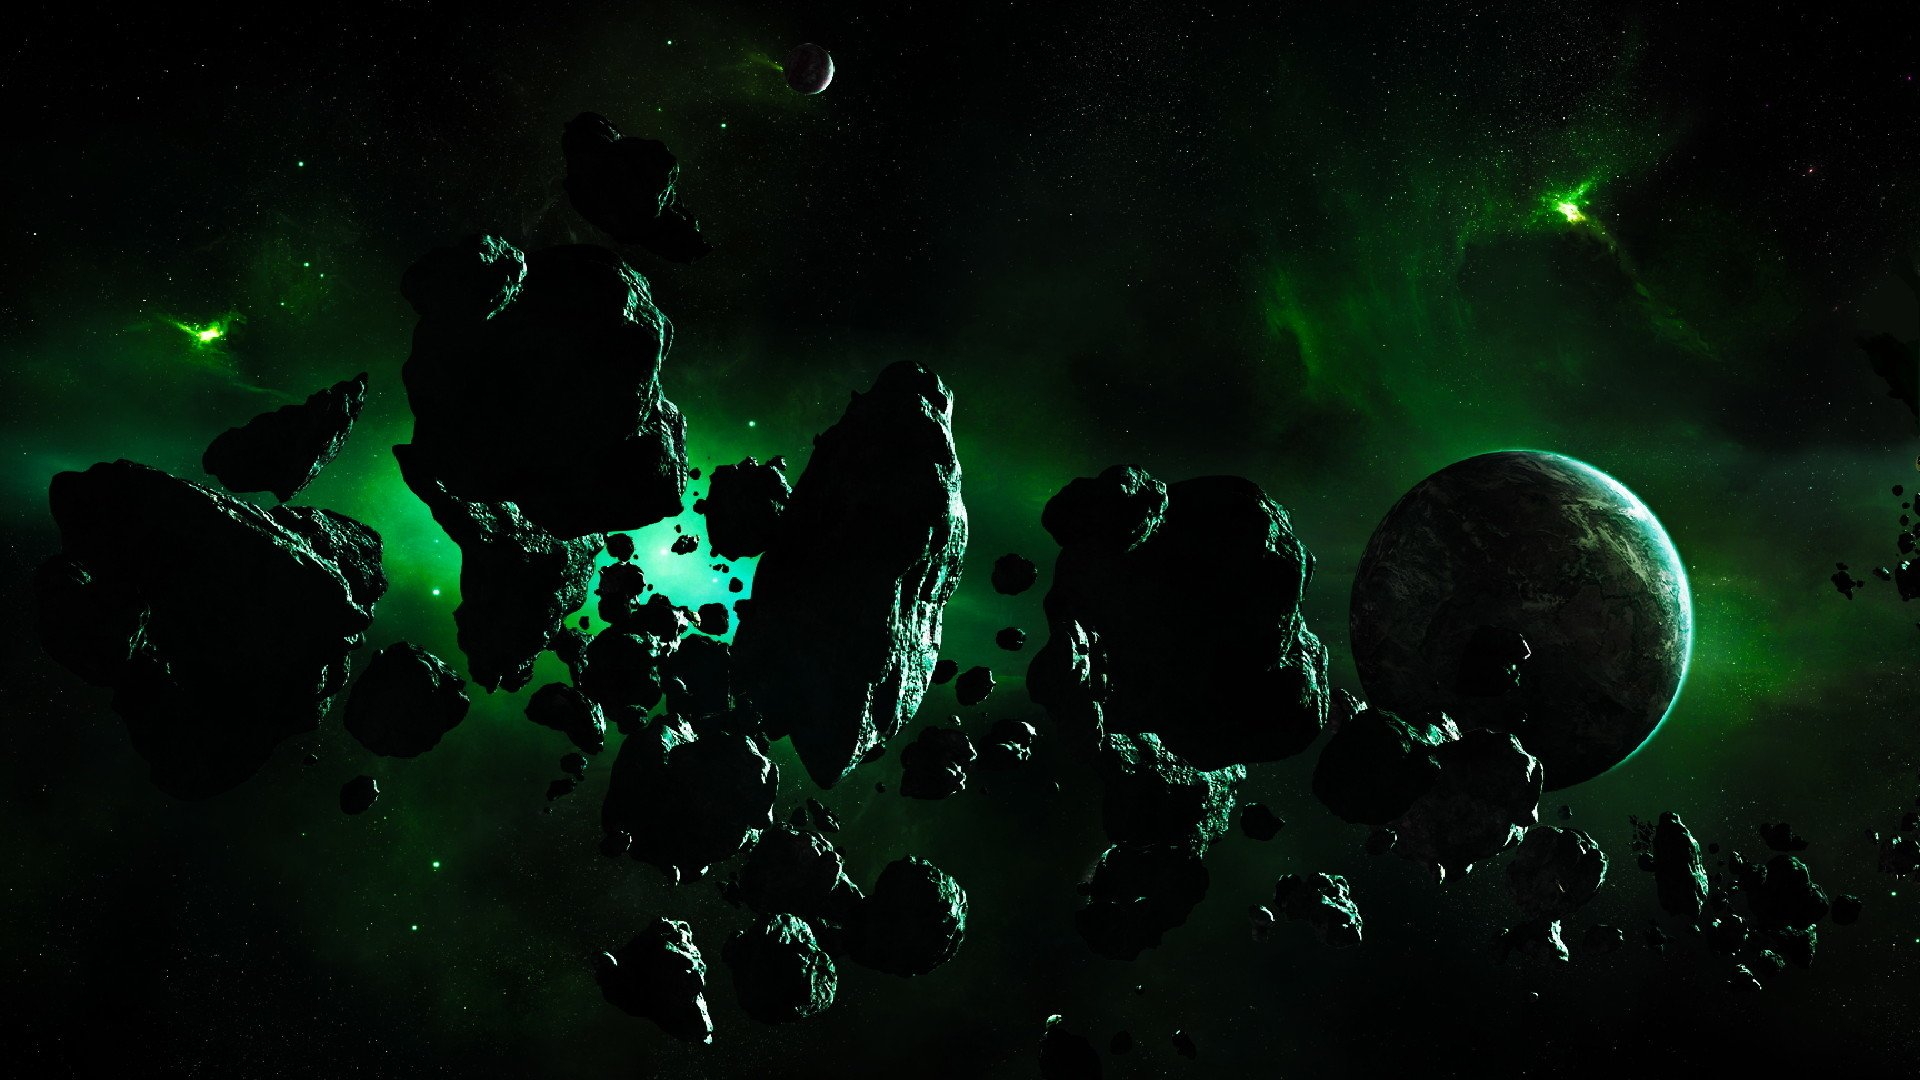 Sci Fi - Planet  Sci Fi Asteroid Stars Space Wallpaper